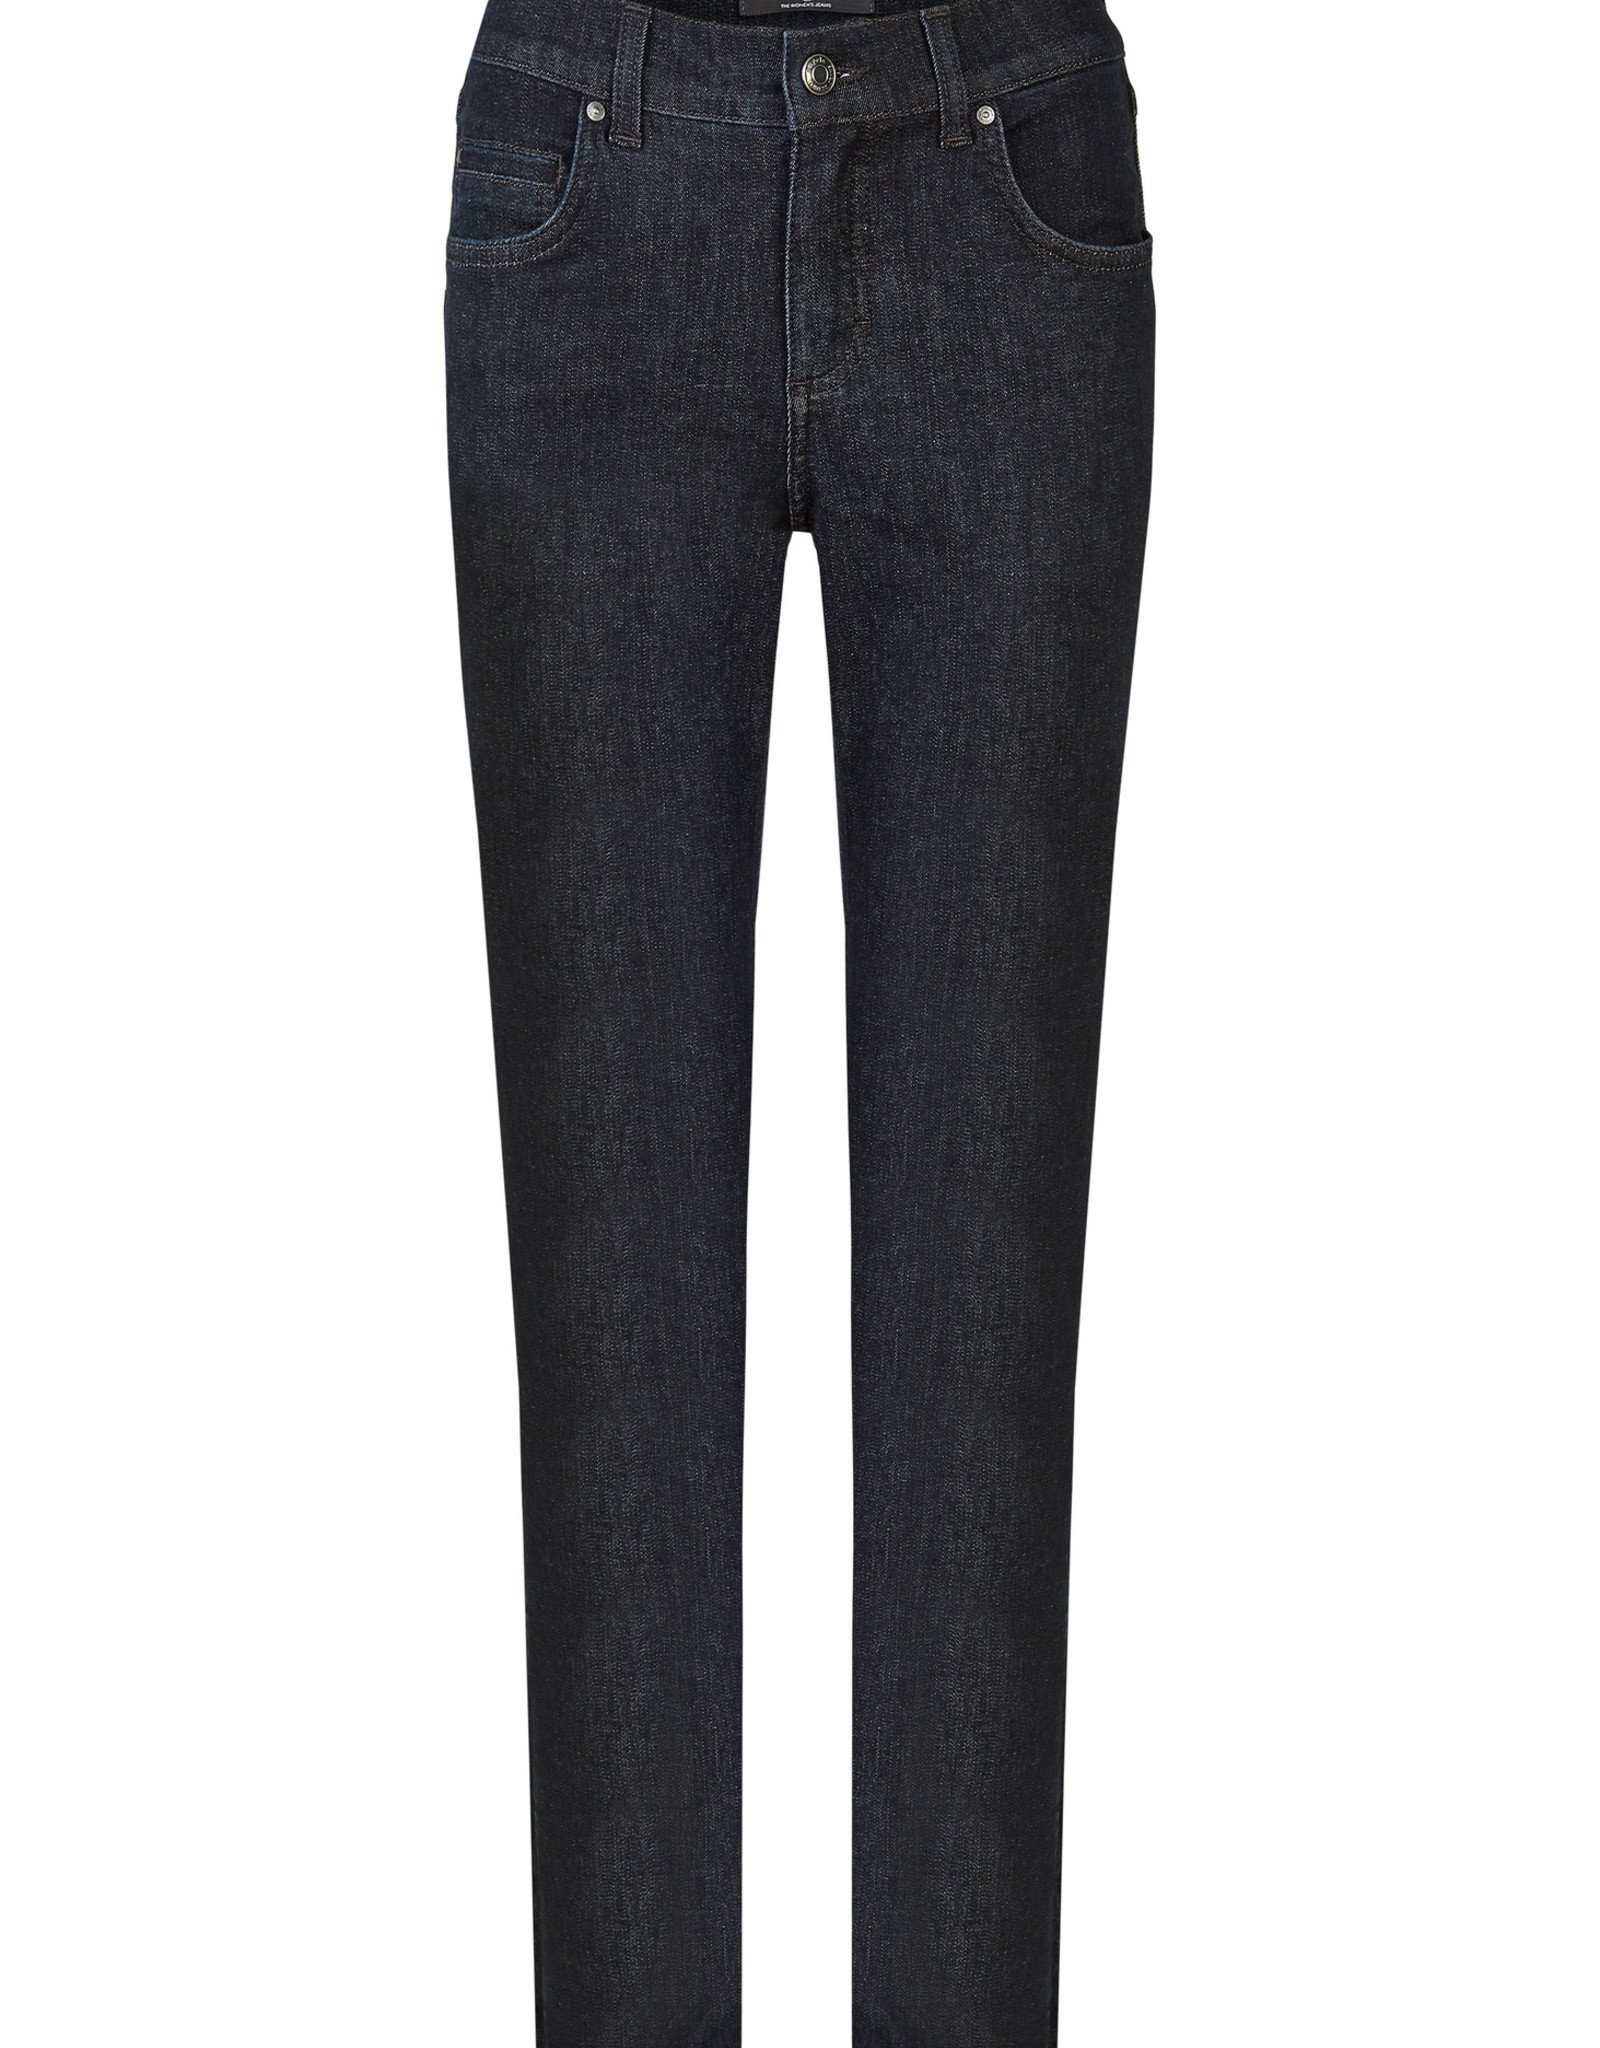 Angels jeans 800030-332/31dolly